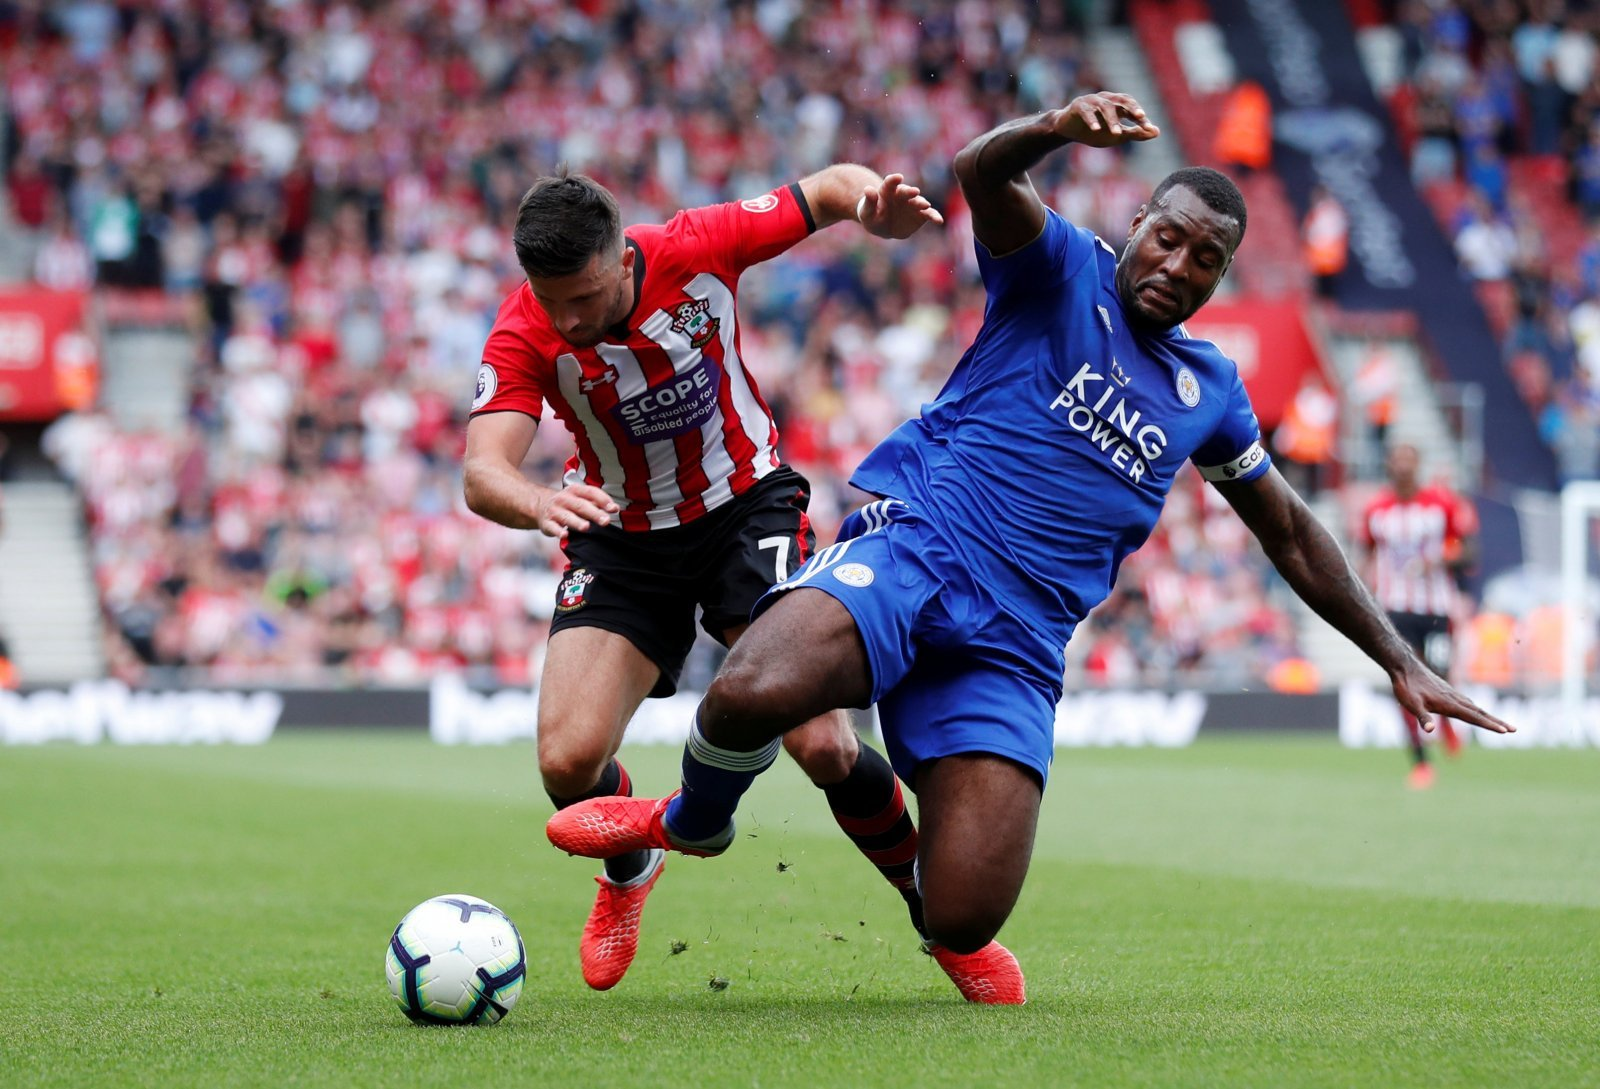 Gray and Maguire netted for Leicester, but Morgan was their unsung hero against Southampton